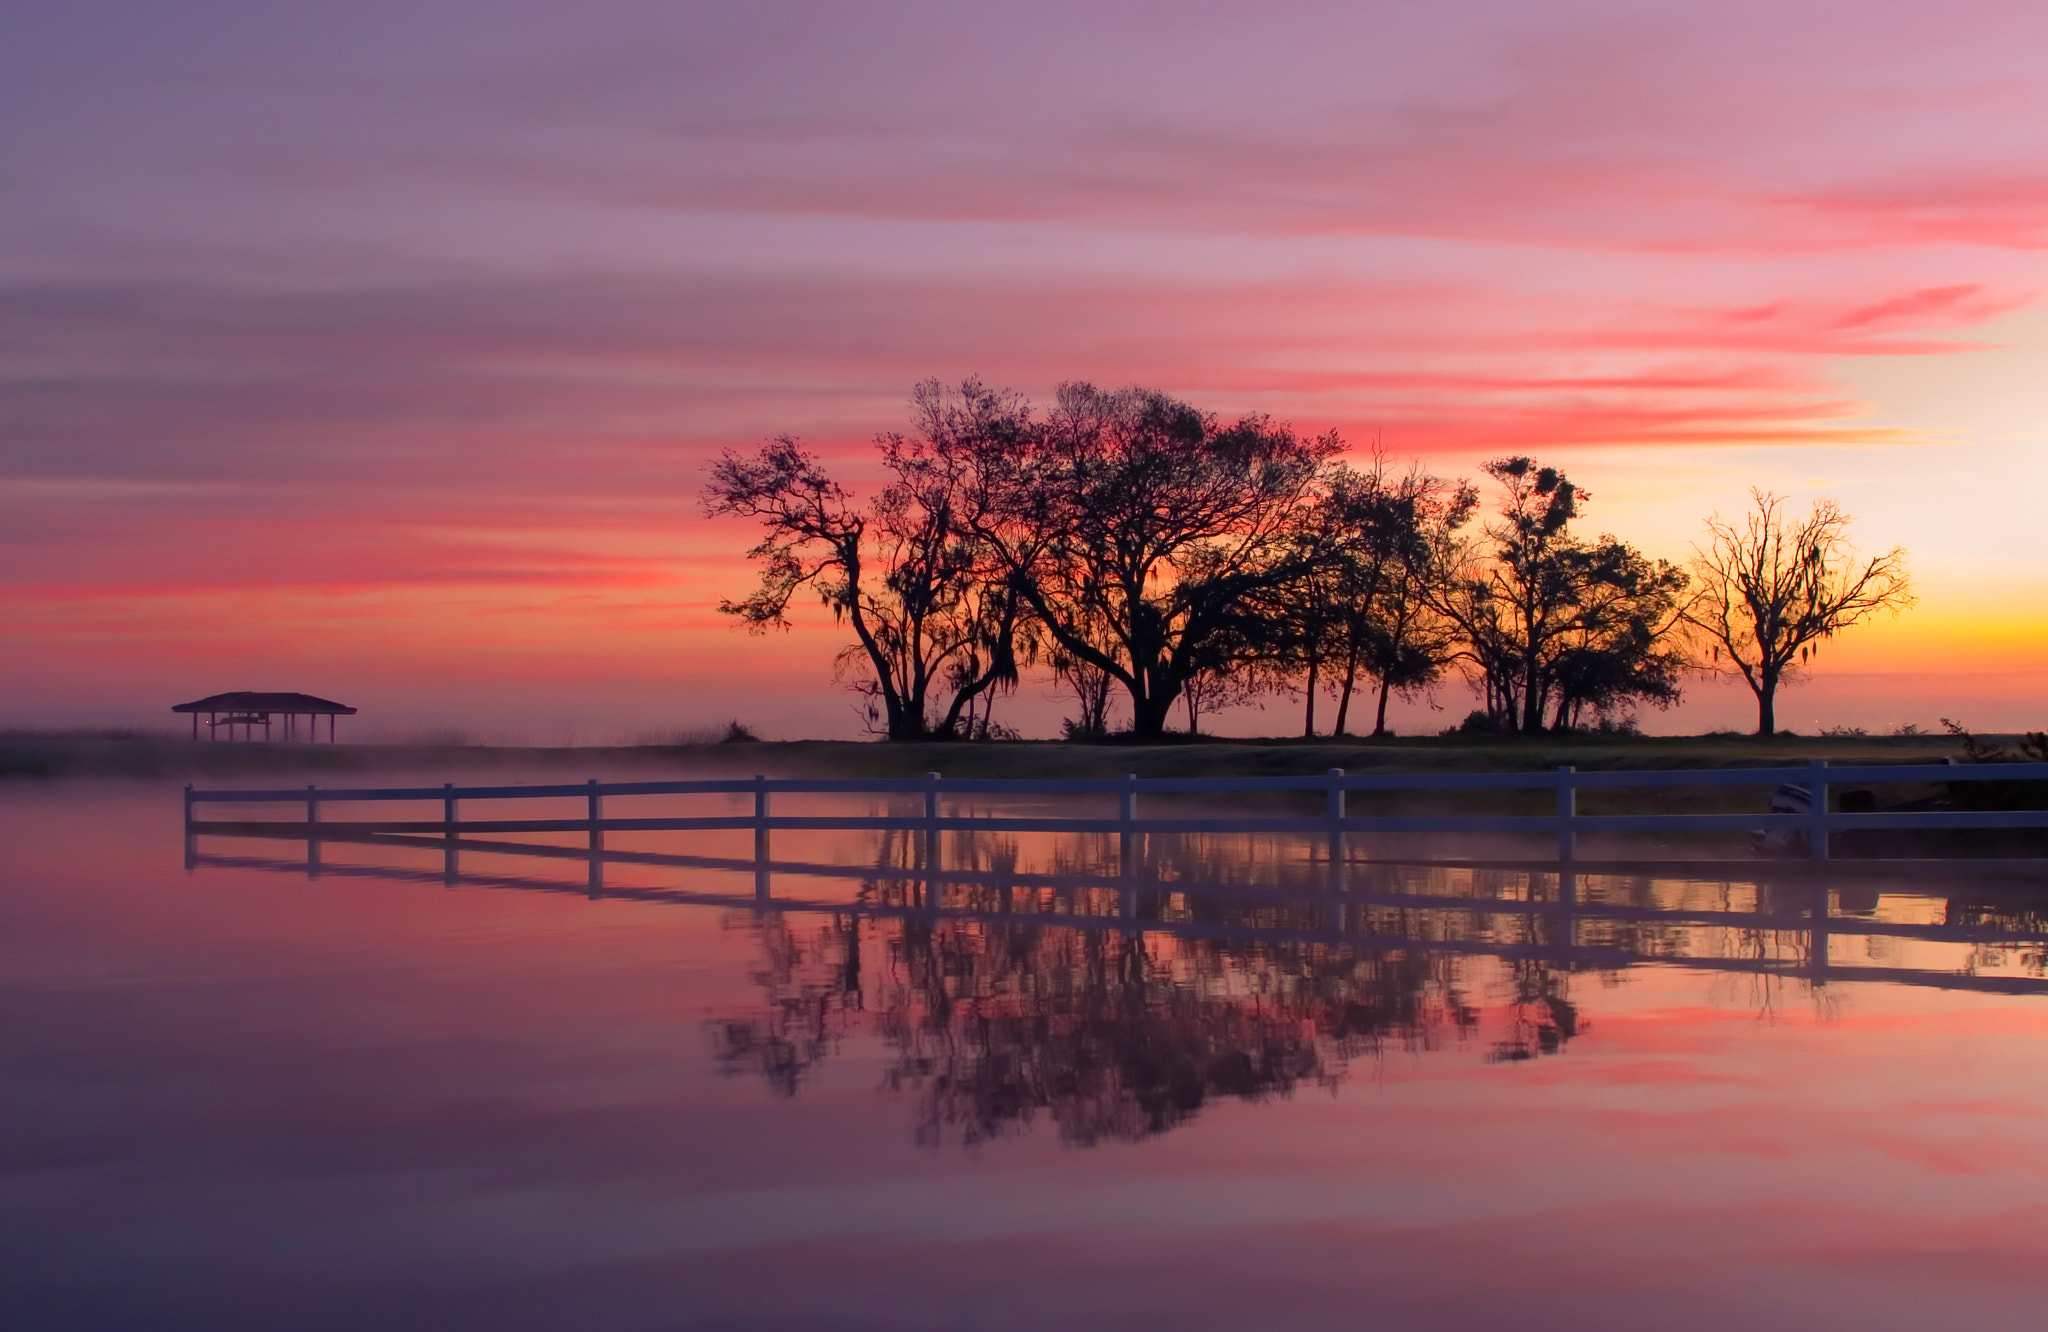 Photograph Morning Rise by Andy Glogower on 500px